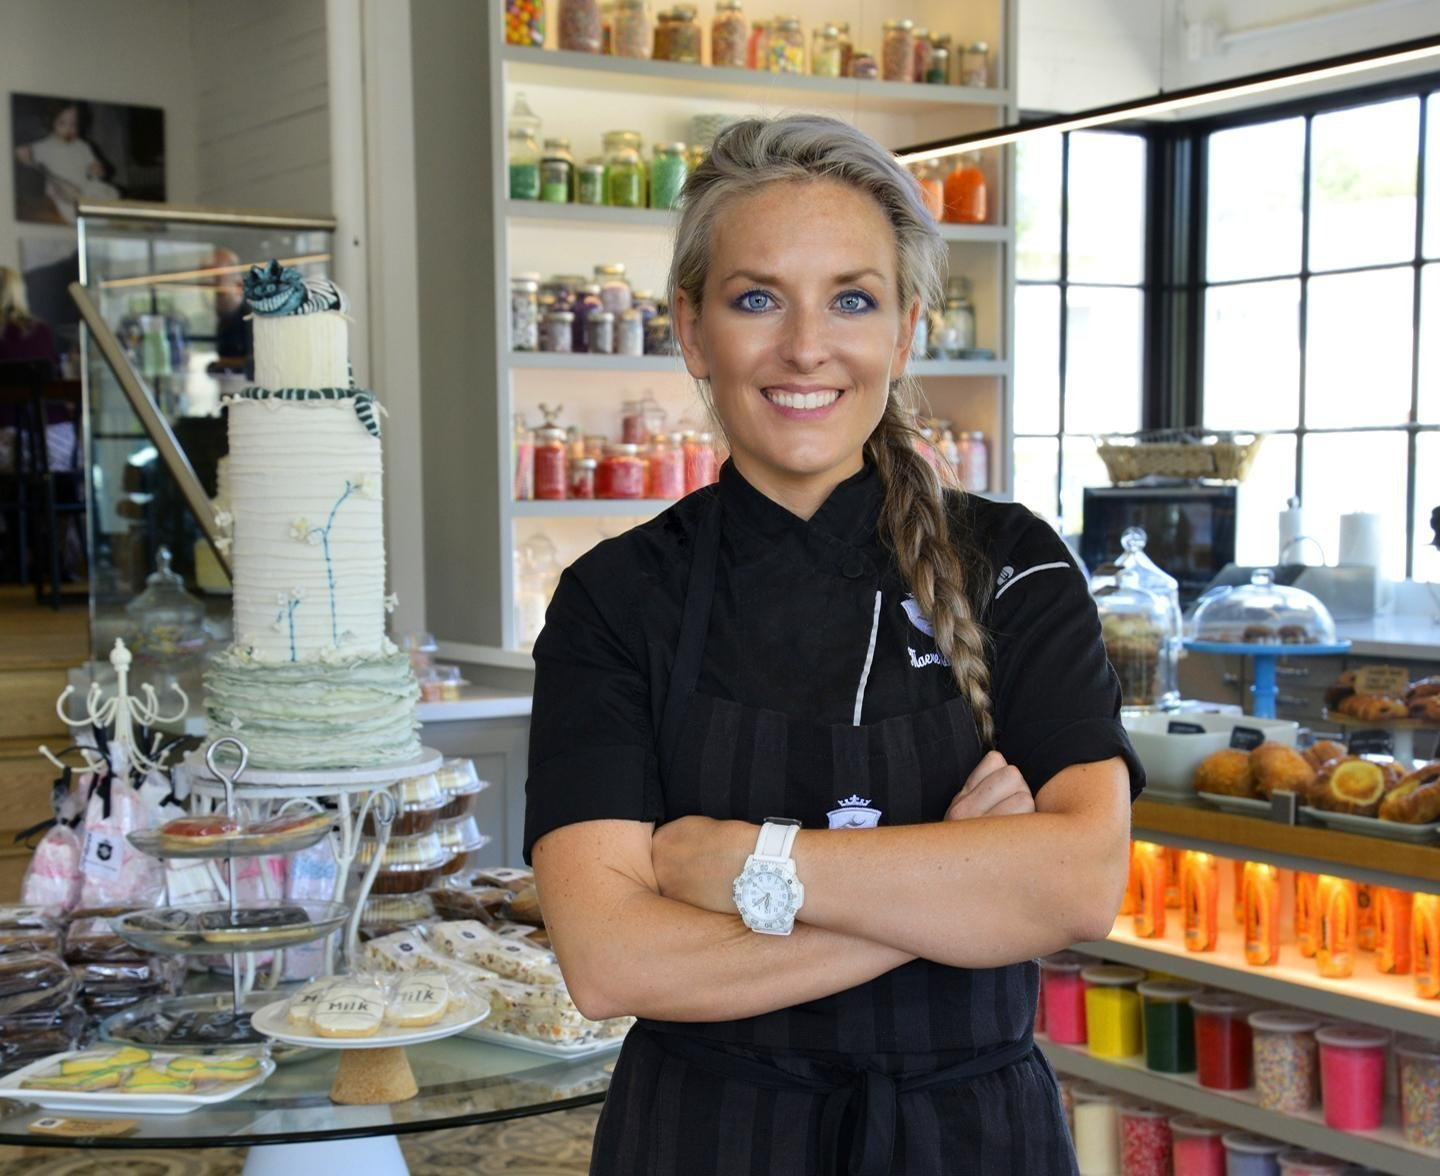 La Jolla Baker Named Irish Woman Of The Year La Jolla Light